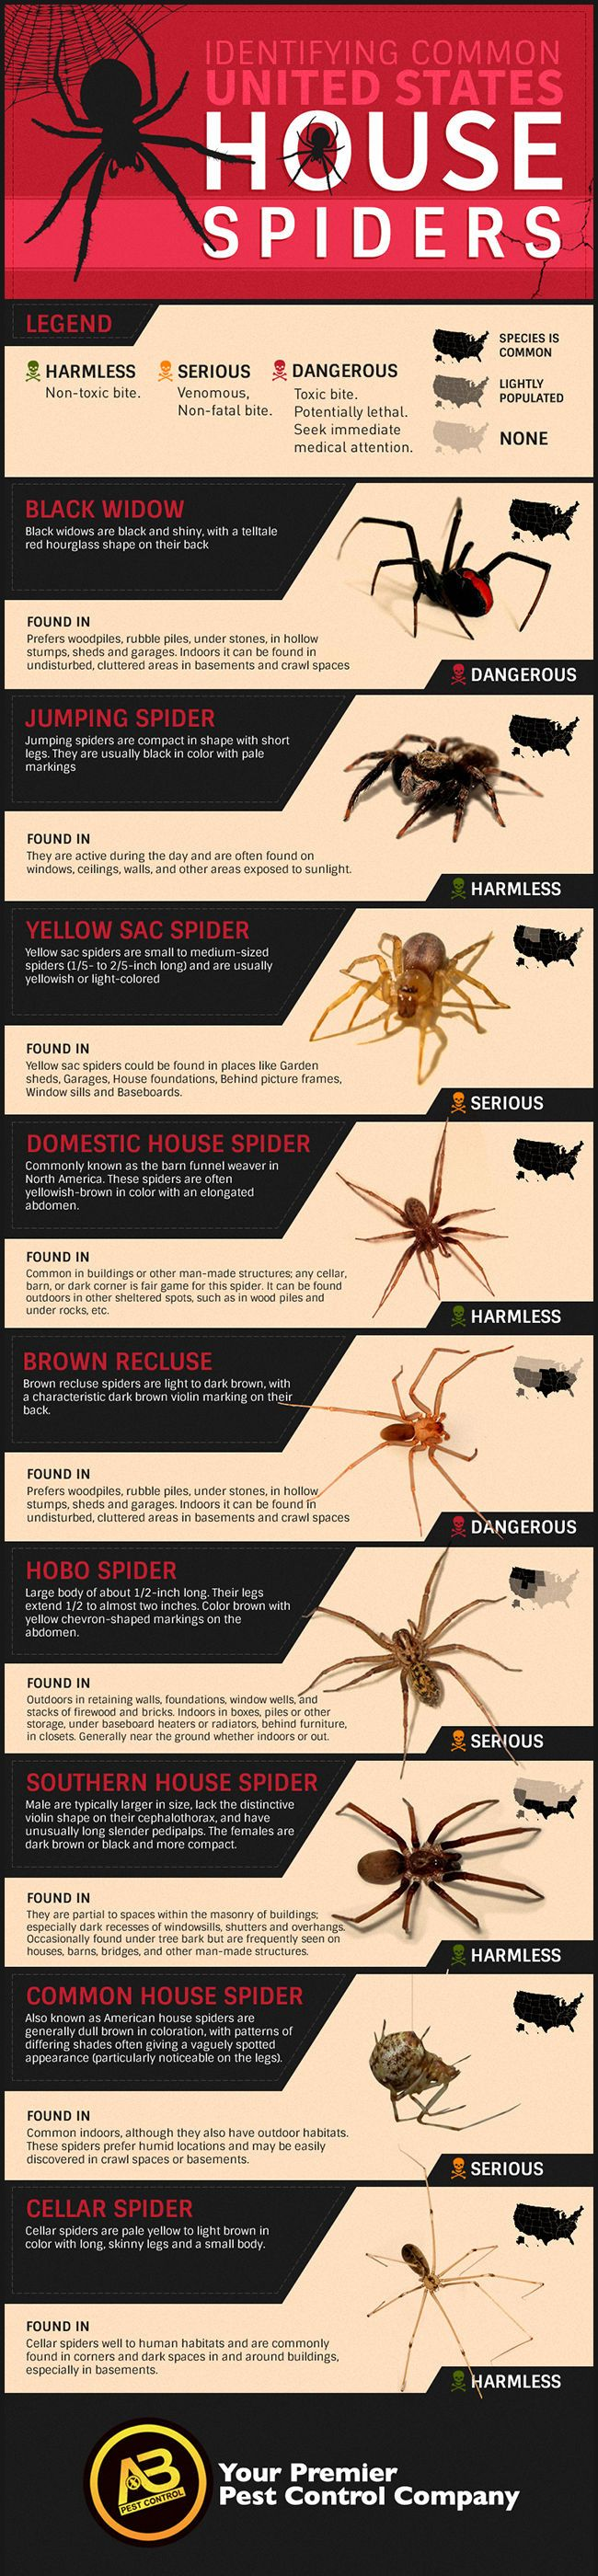 From harmless with a non-toxic bite, to serious to dangerous. Find which spiders are common in your area of the U.S. via AB-Pest Control